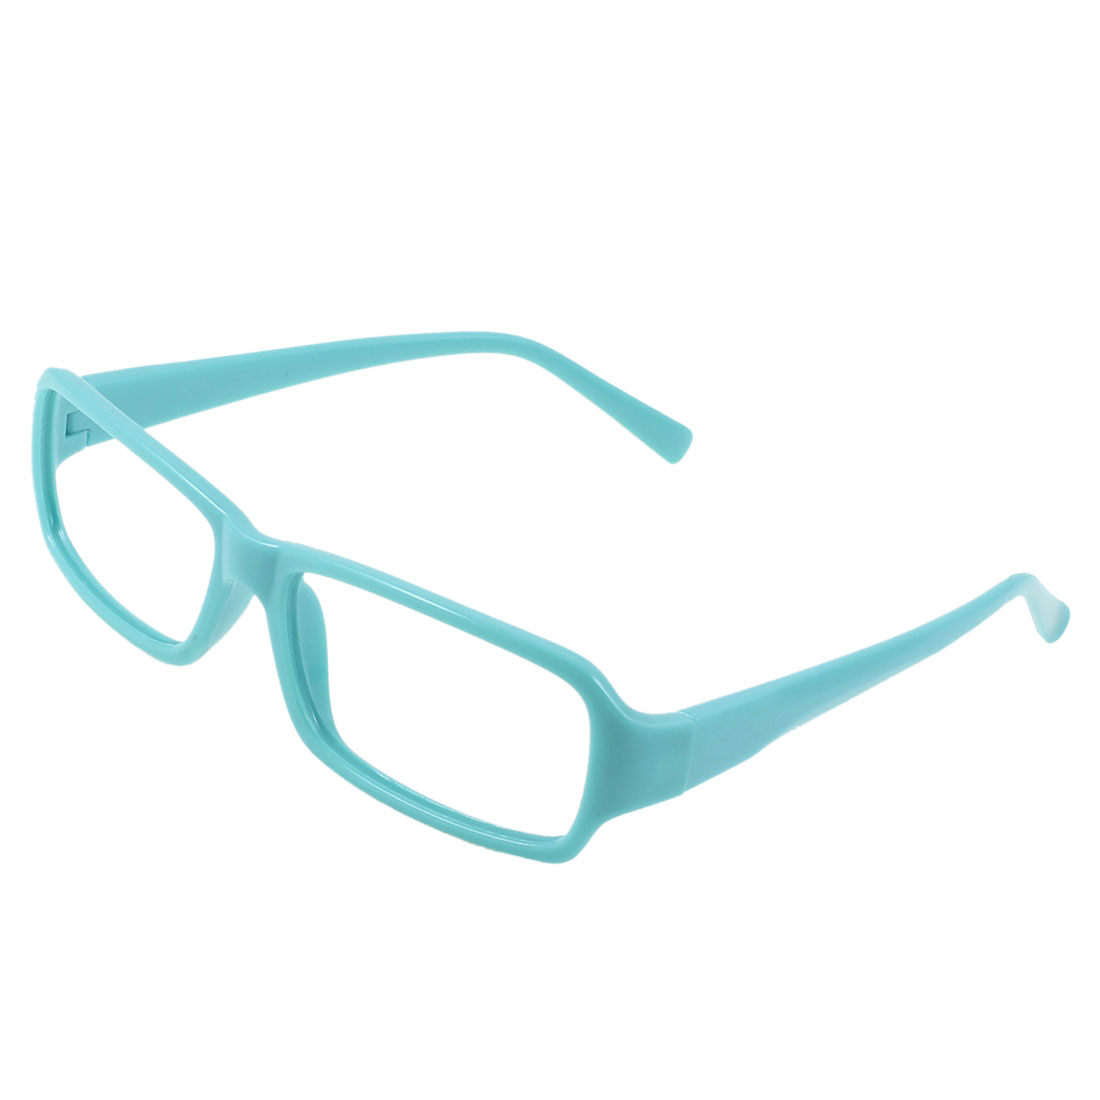 Ladies Plastic Full Rim Rectangular Eyeglasses Frame Sky Blue